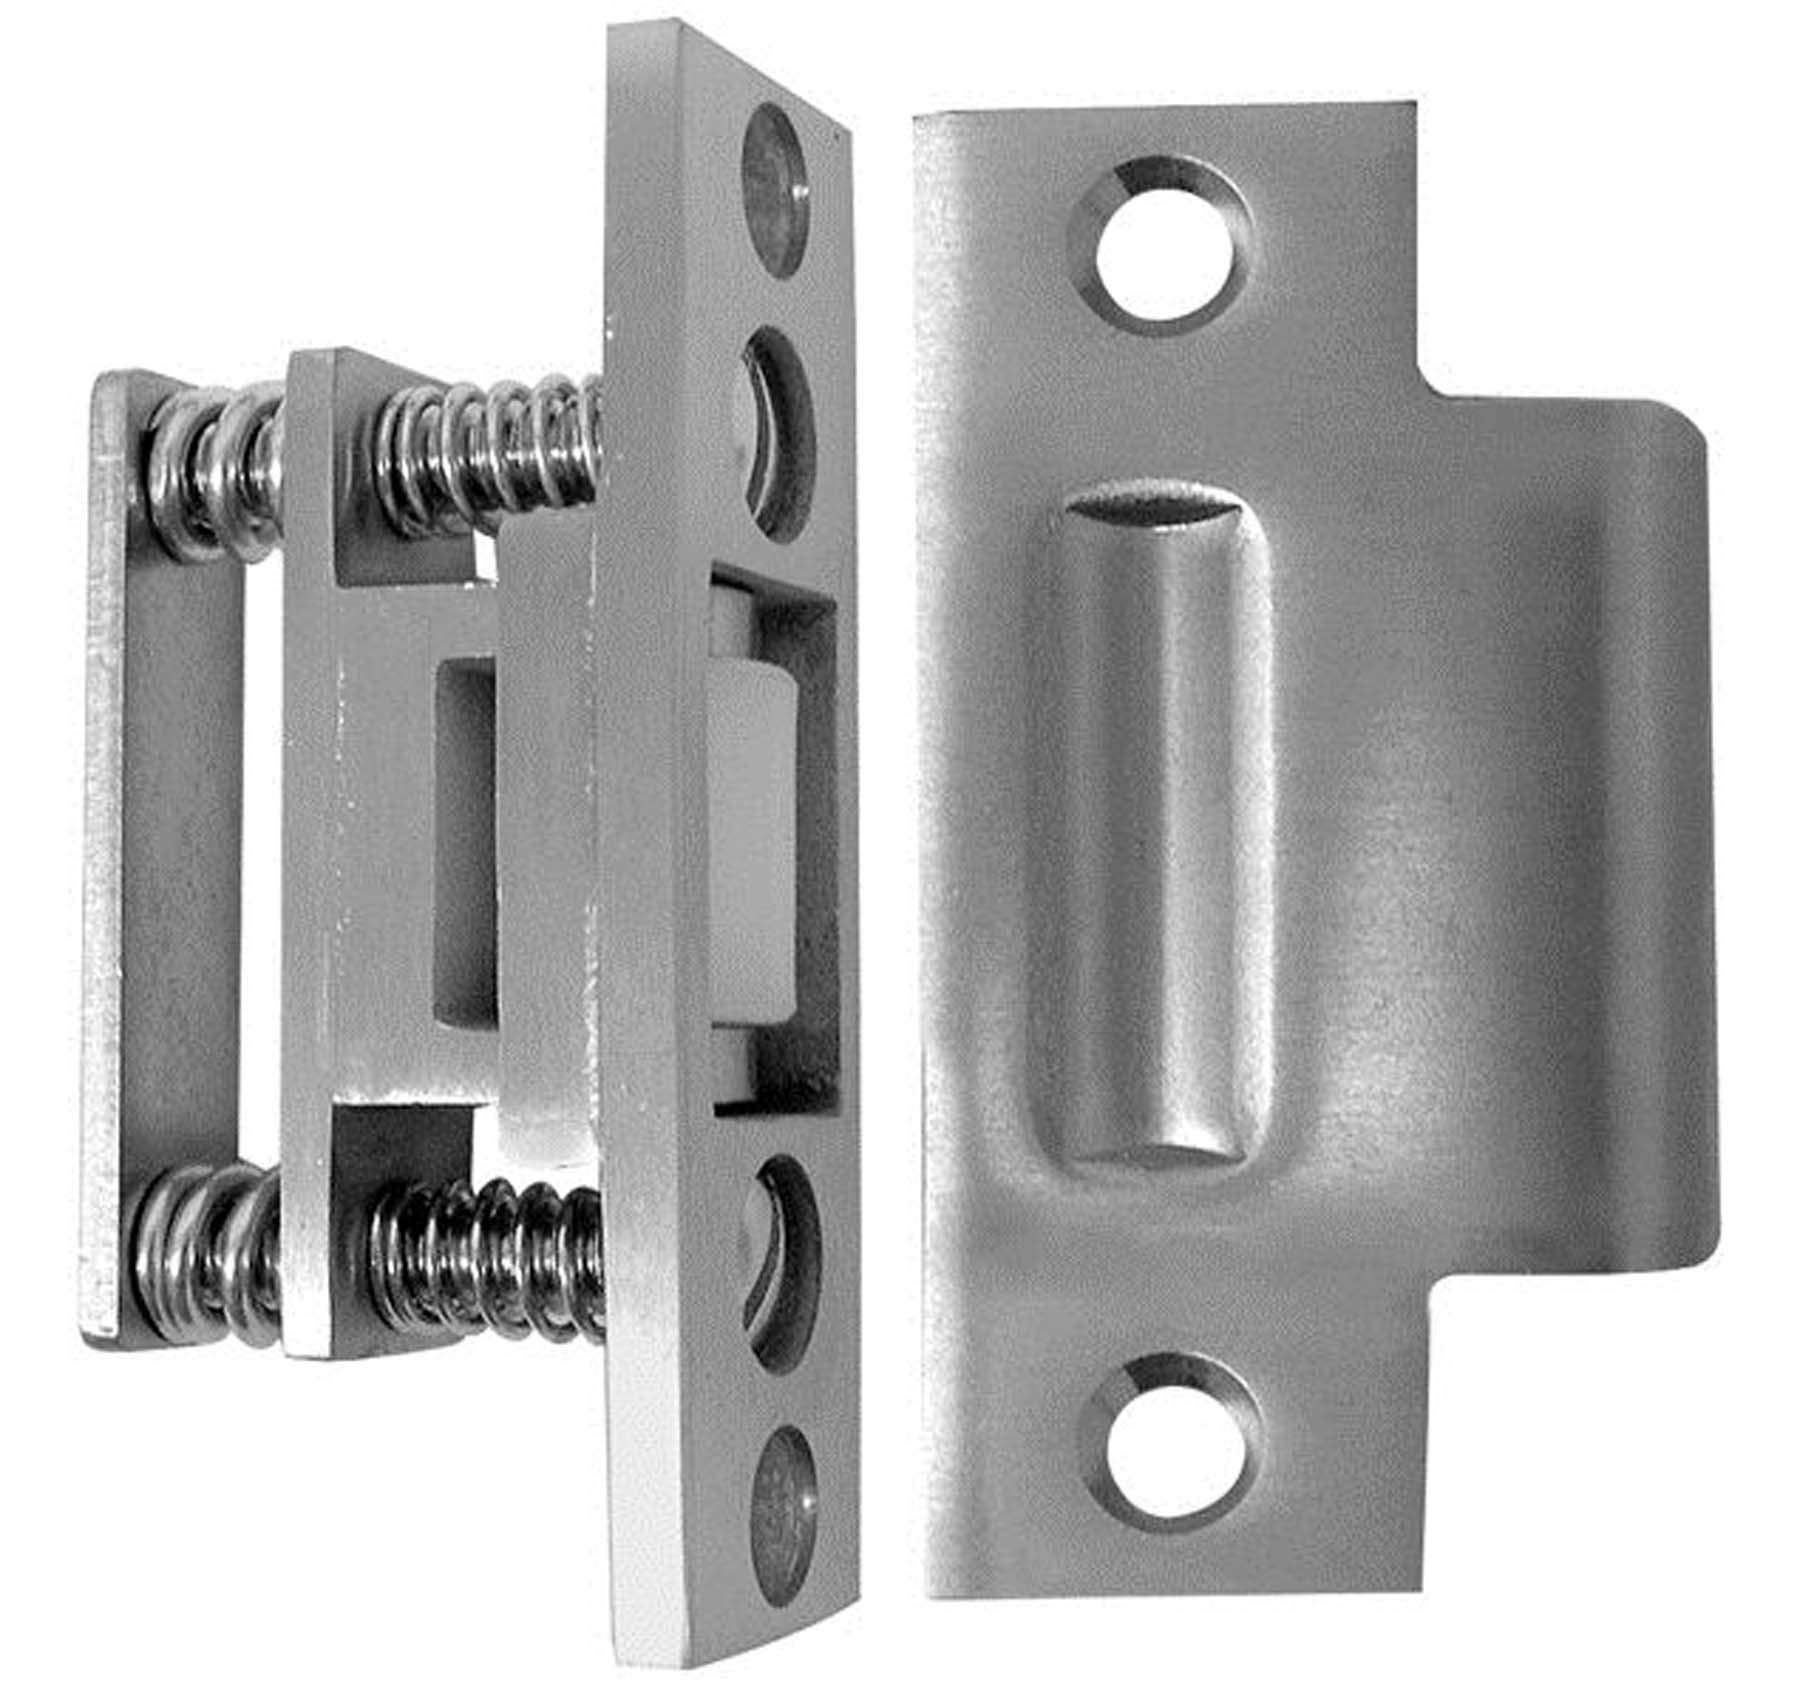 Suicide resistant stainless steel roller latch, 2-3/4″ strike